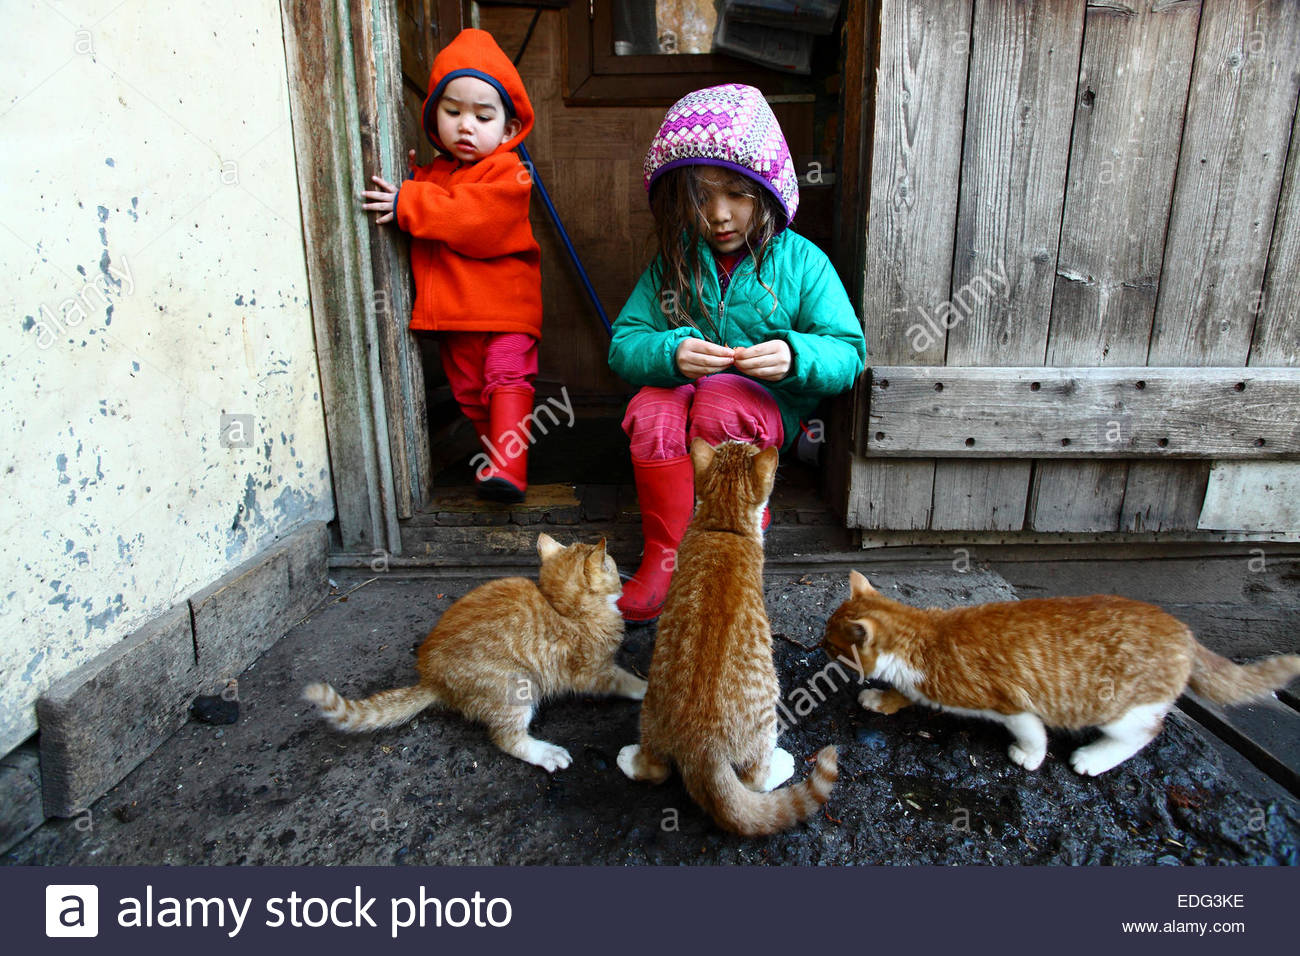 Two young children feed craps to three kittens in Puerto Prat, a village located on the Eberhard fjord in Chile. - Stock Image